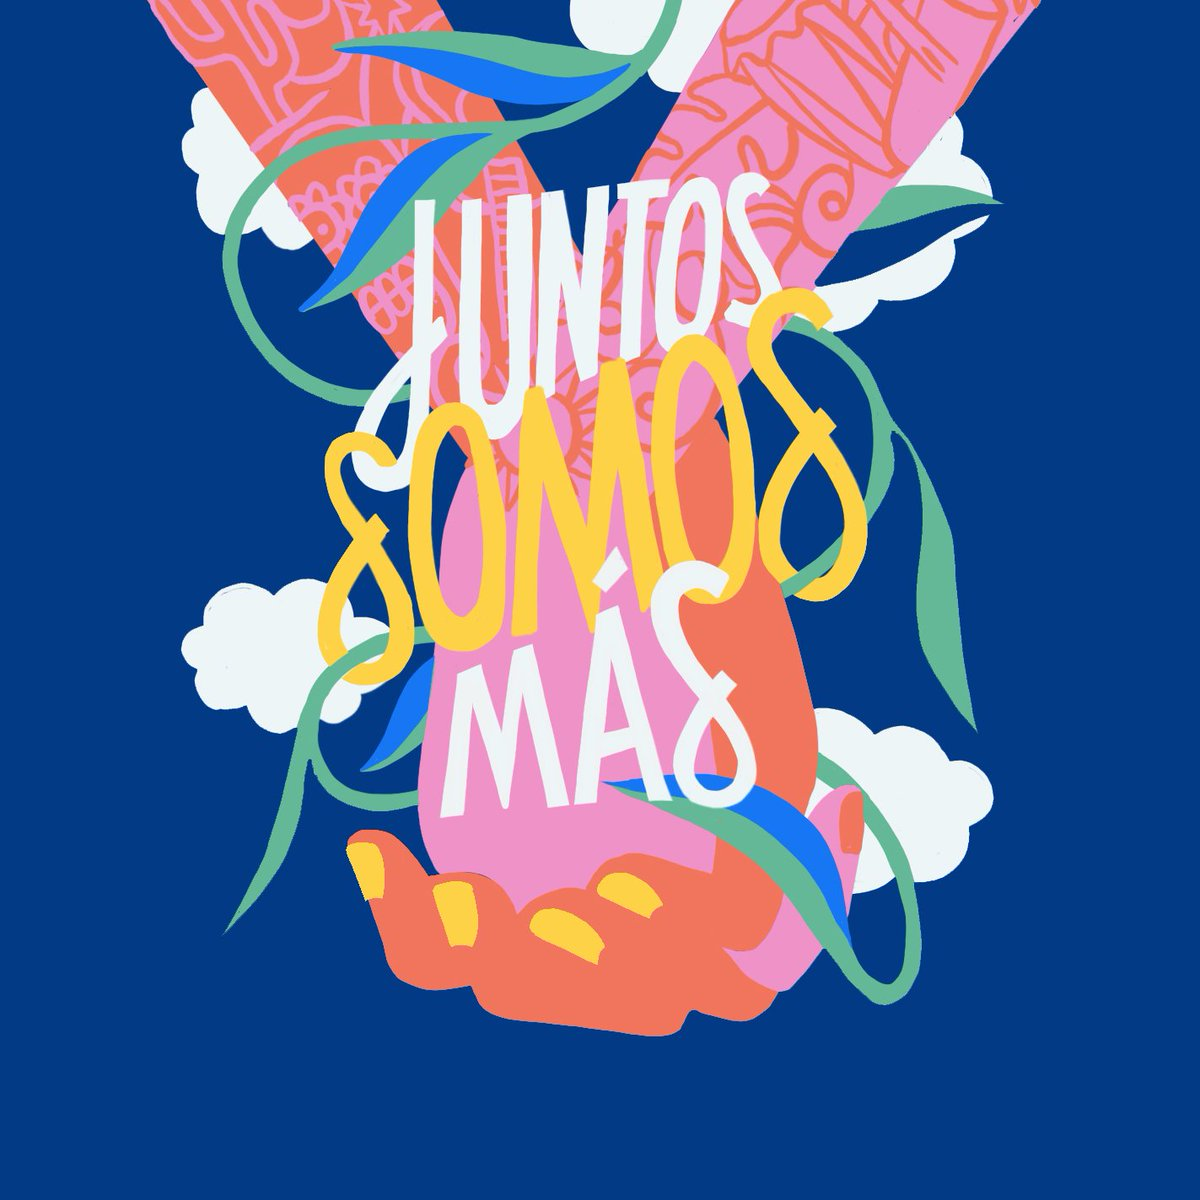 ¡Feliz Mes de la Herencia Hispana!   Happy Hispanic Heritage Month! Send love to the people in your life who have helped make you who you are. Art by community member and Dominican American artist, Edward Ubiera. #MoreTogether #JuntosSomosMás